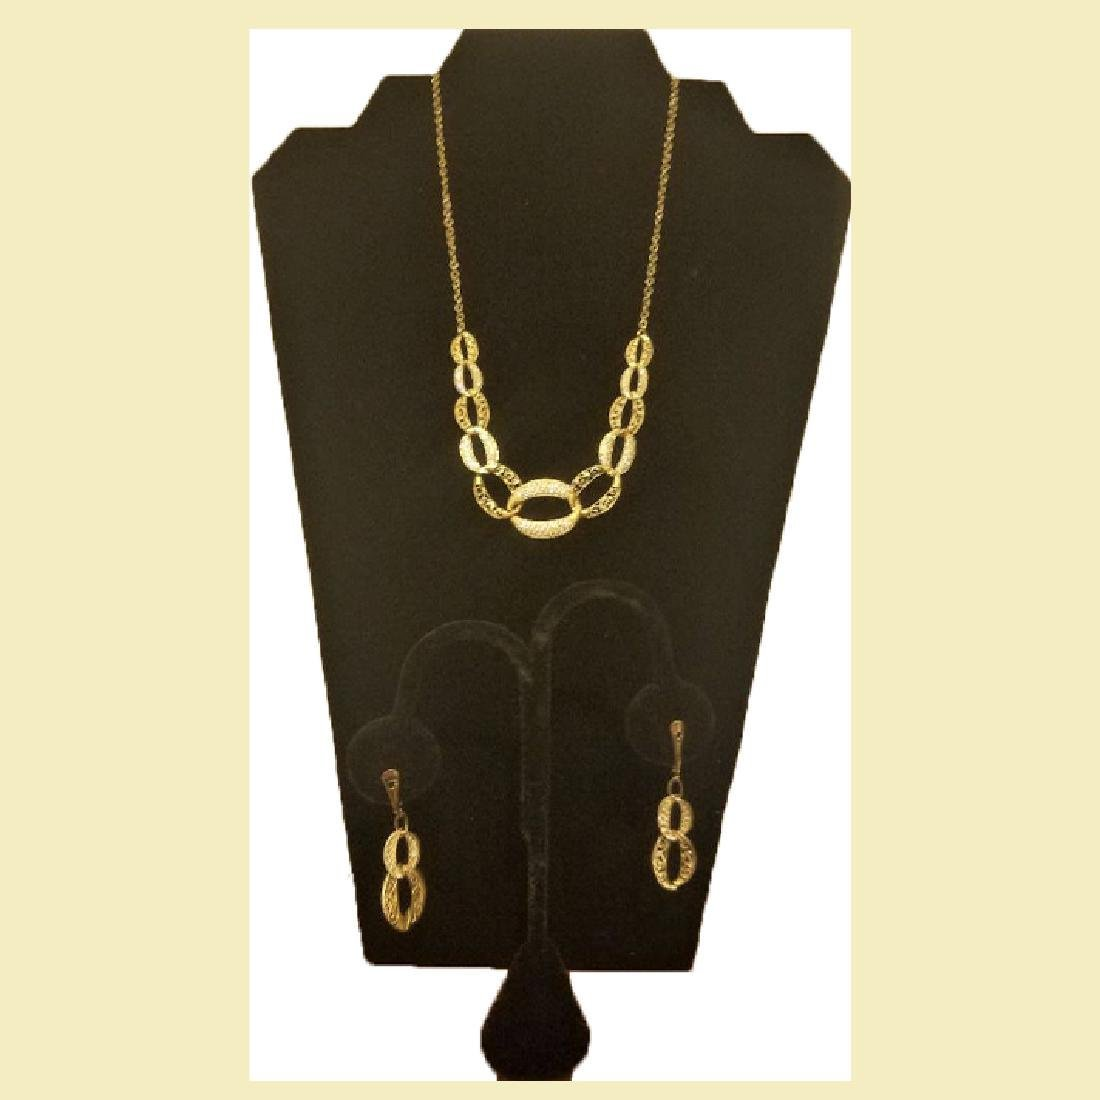 Set of stunning yellow gold necklace 14k with linked